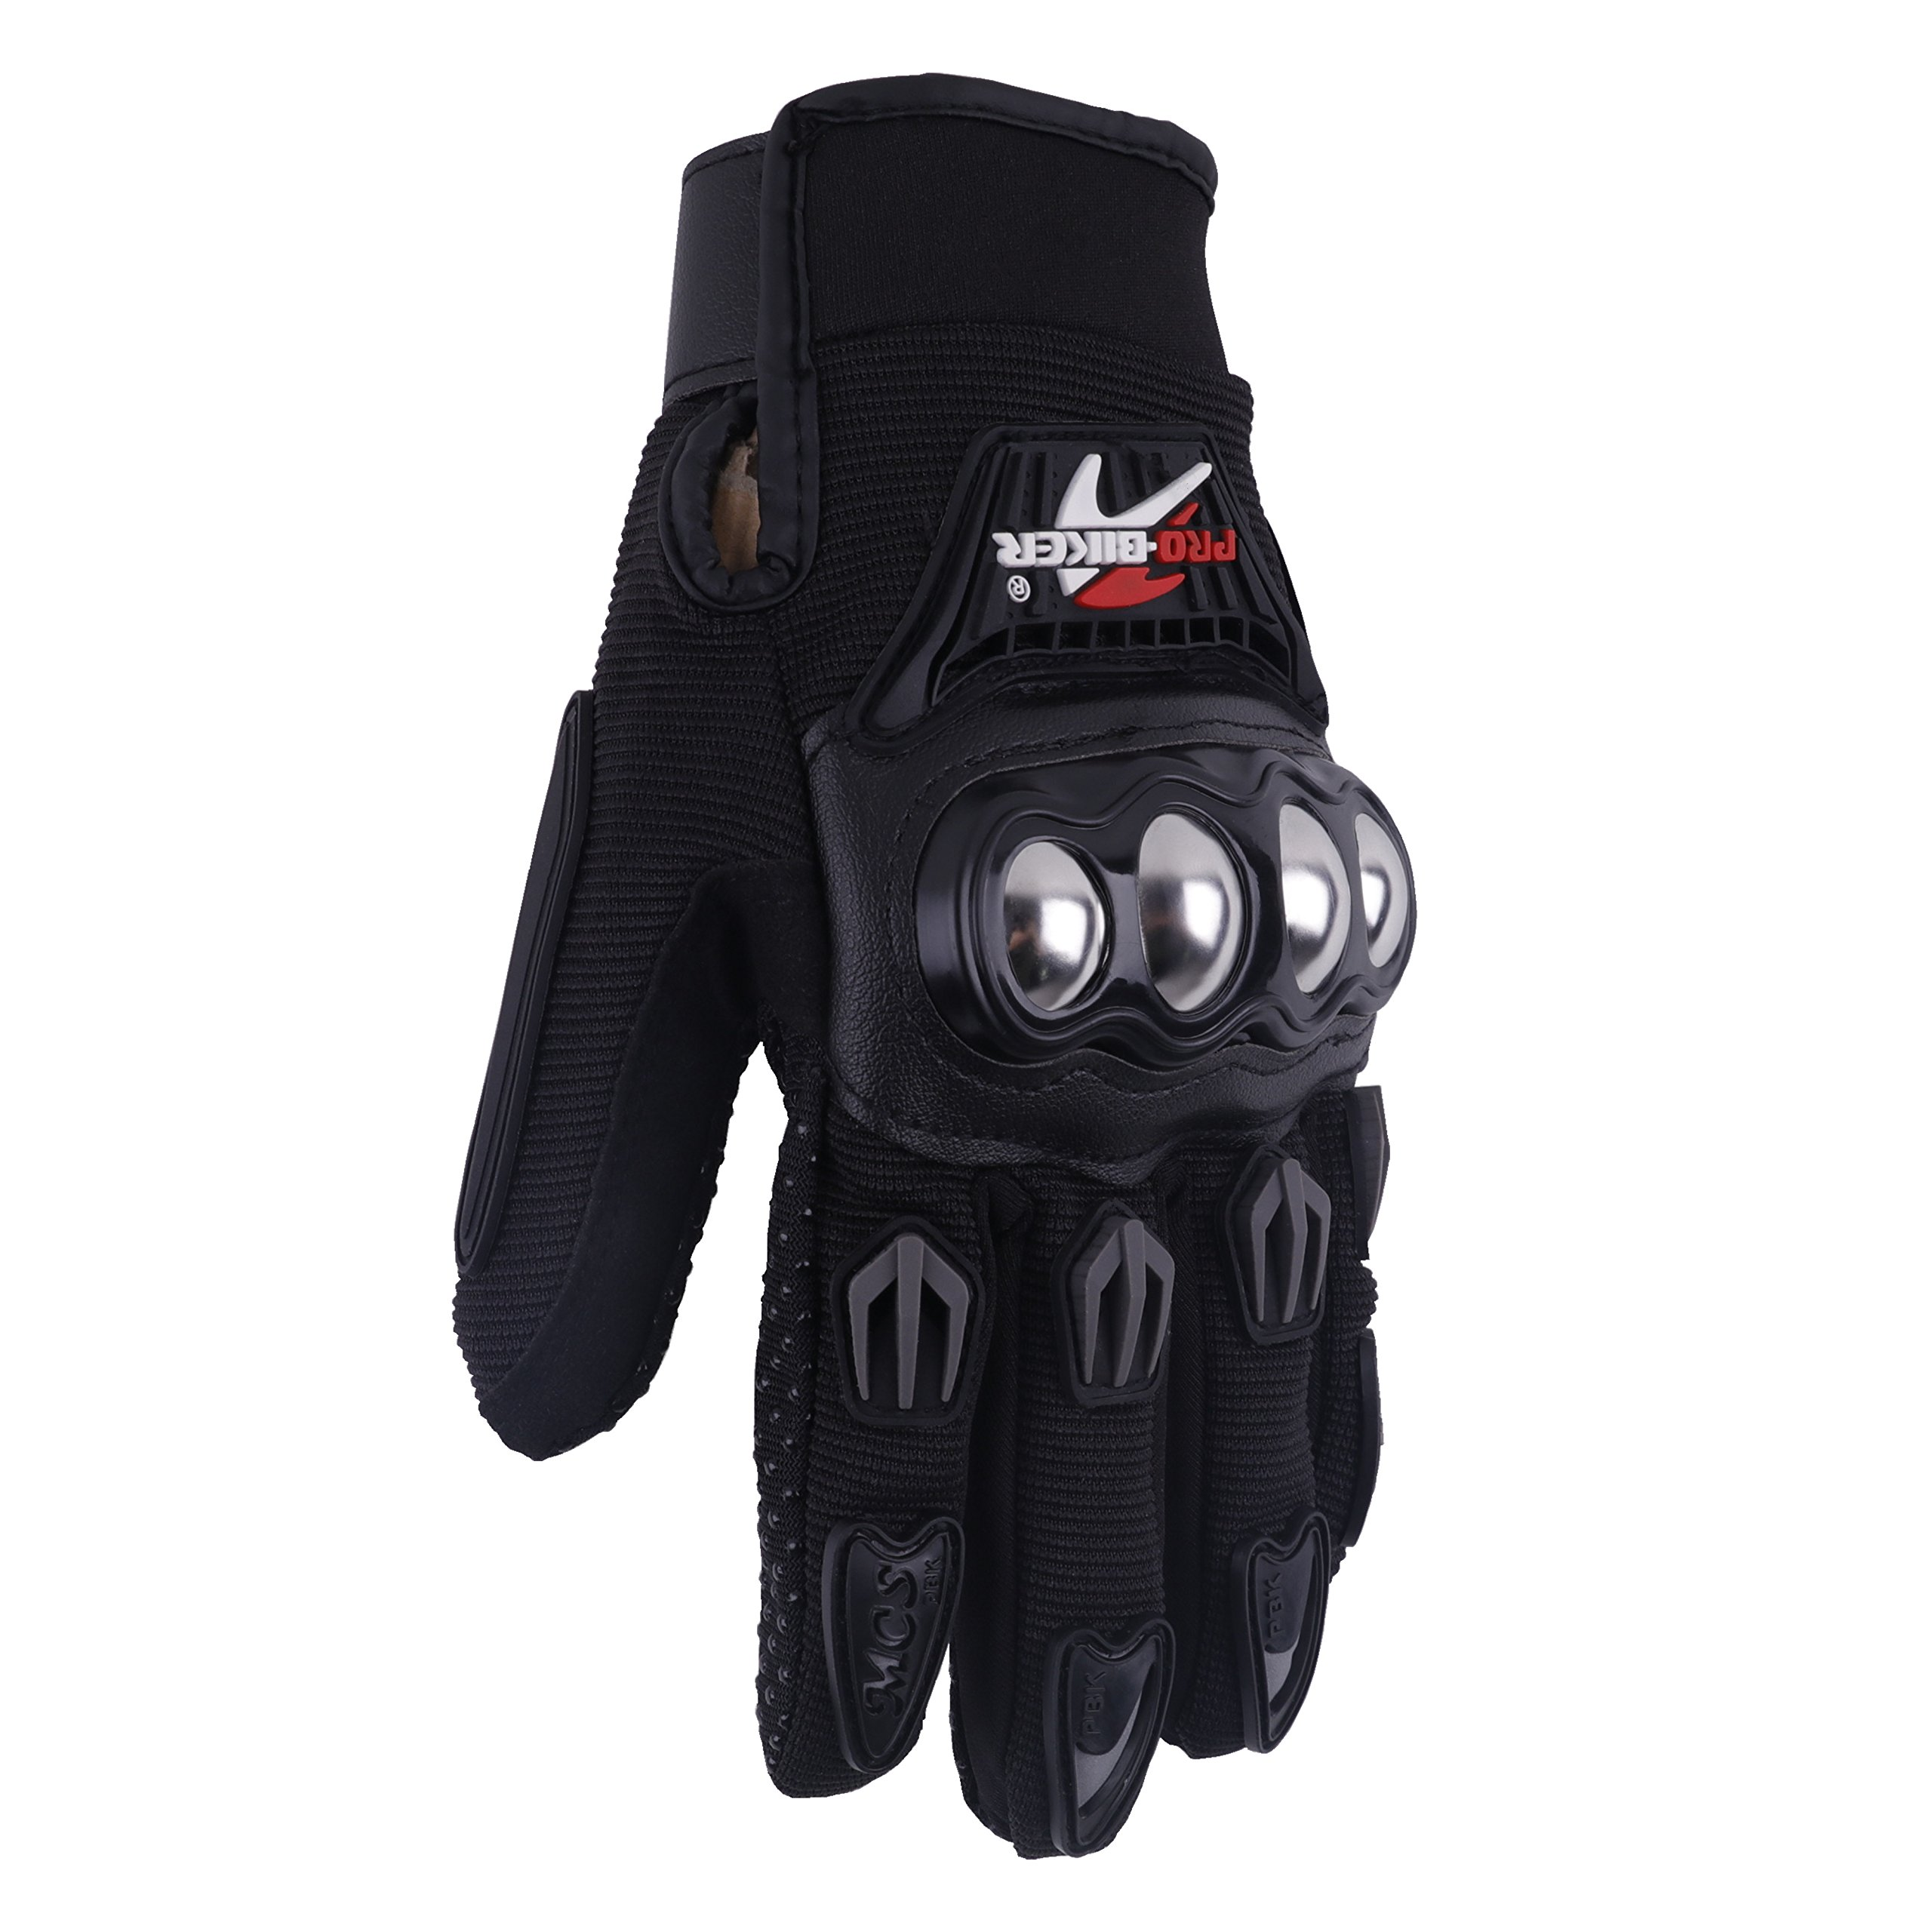 Jackey Awesome Pair of Three Colors Optional Pro-Biker Bicycle Motorcycle Motorbike Powersports Racing Gloves (M, Alloy Steel Knuckle,Black)